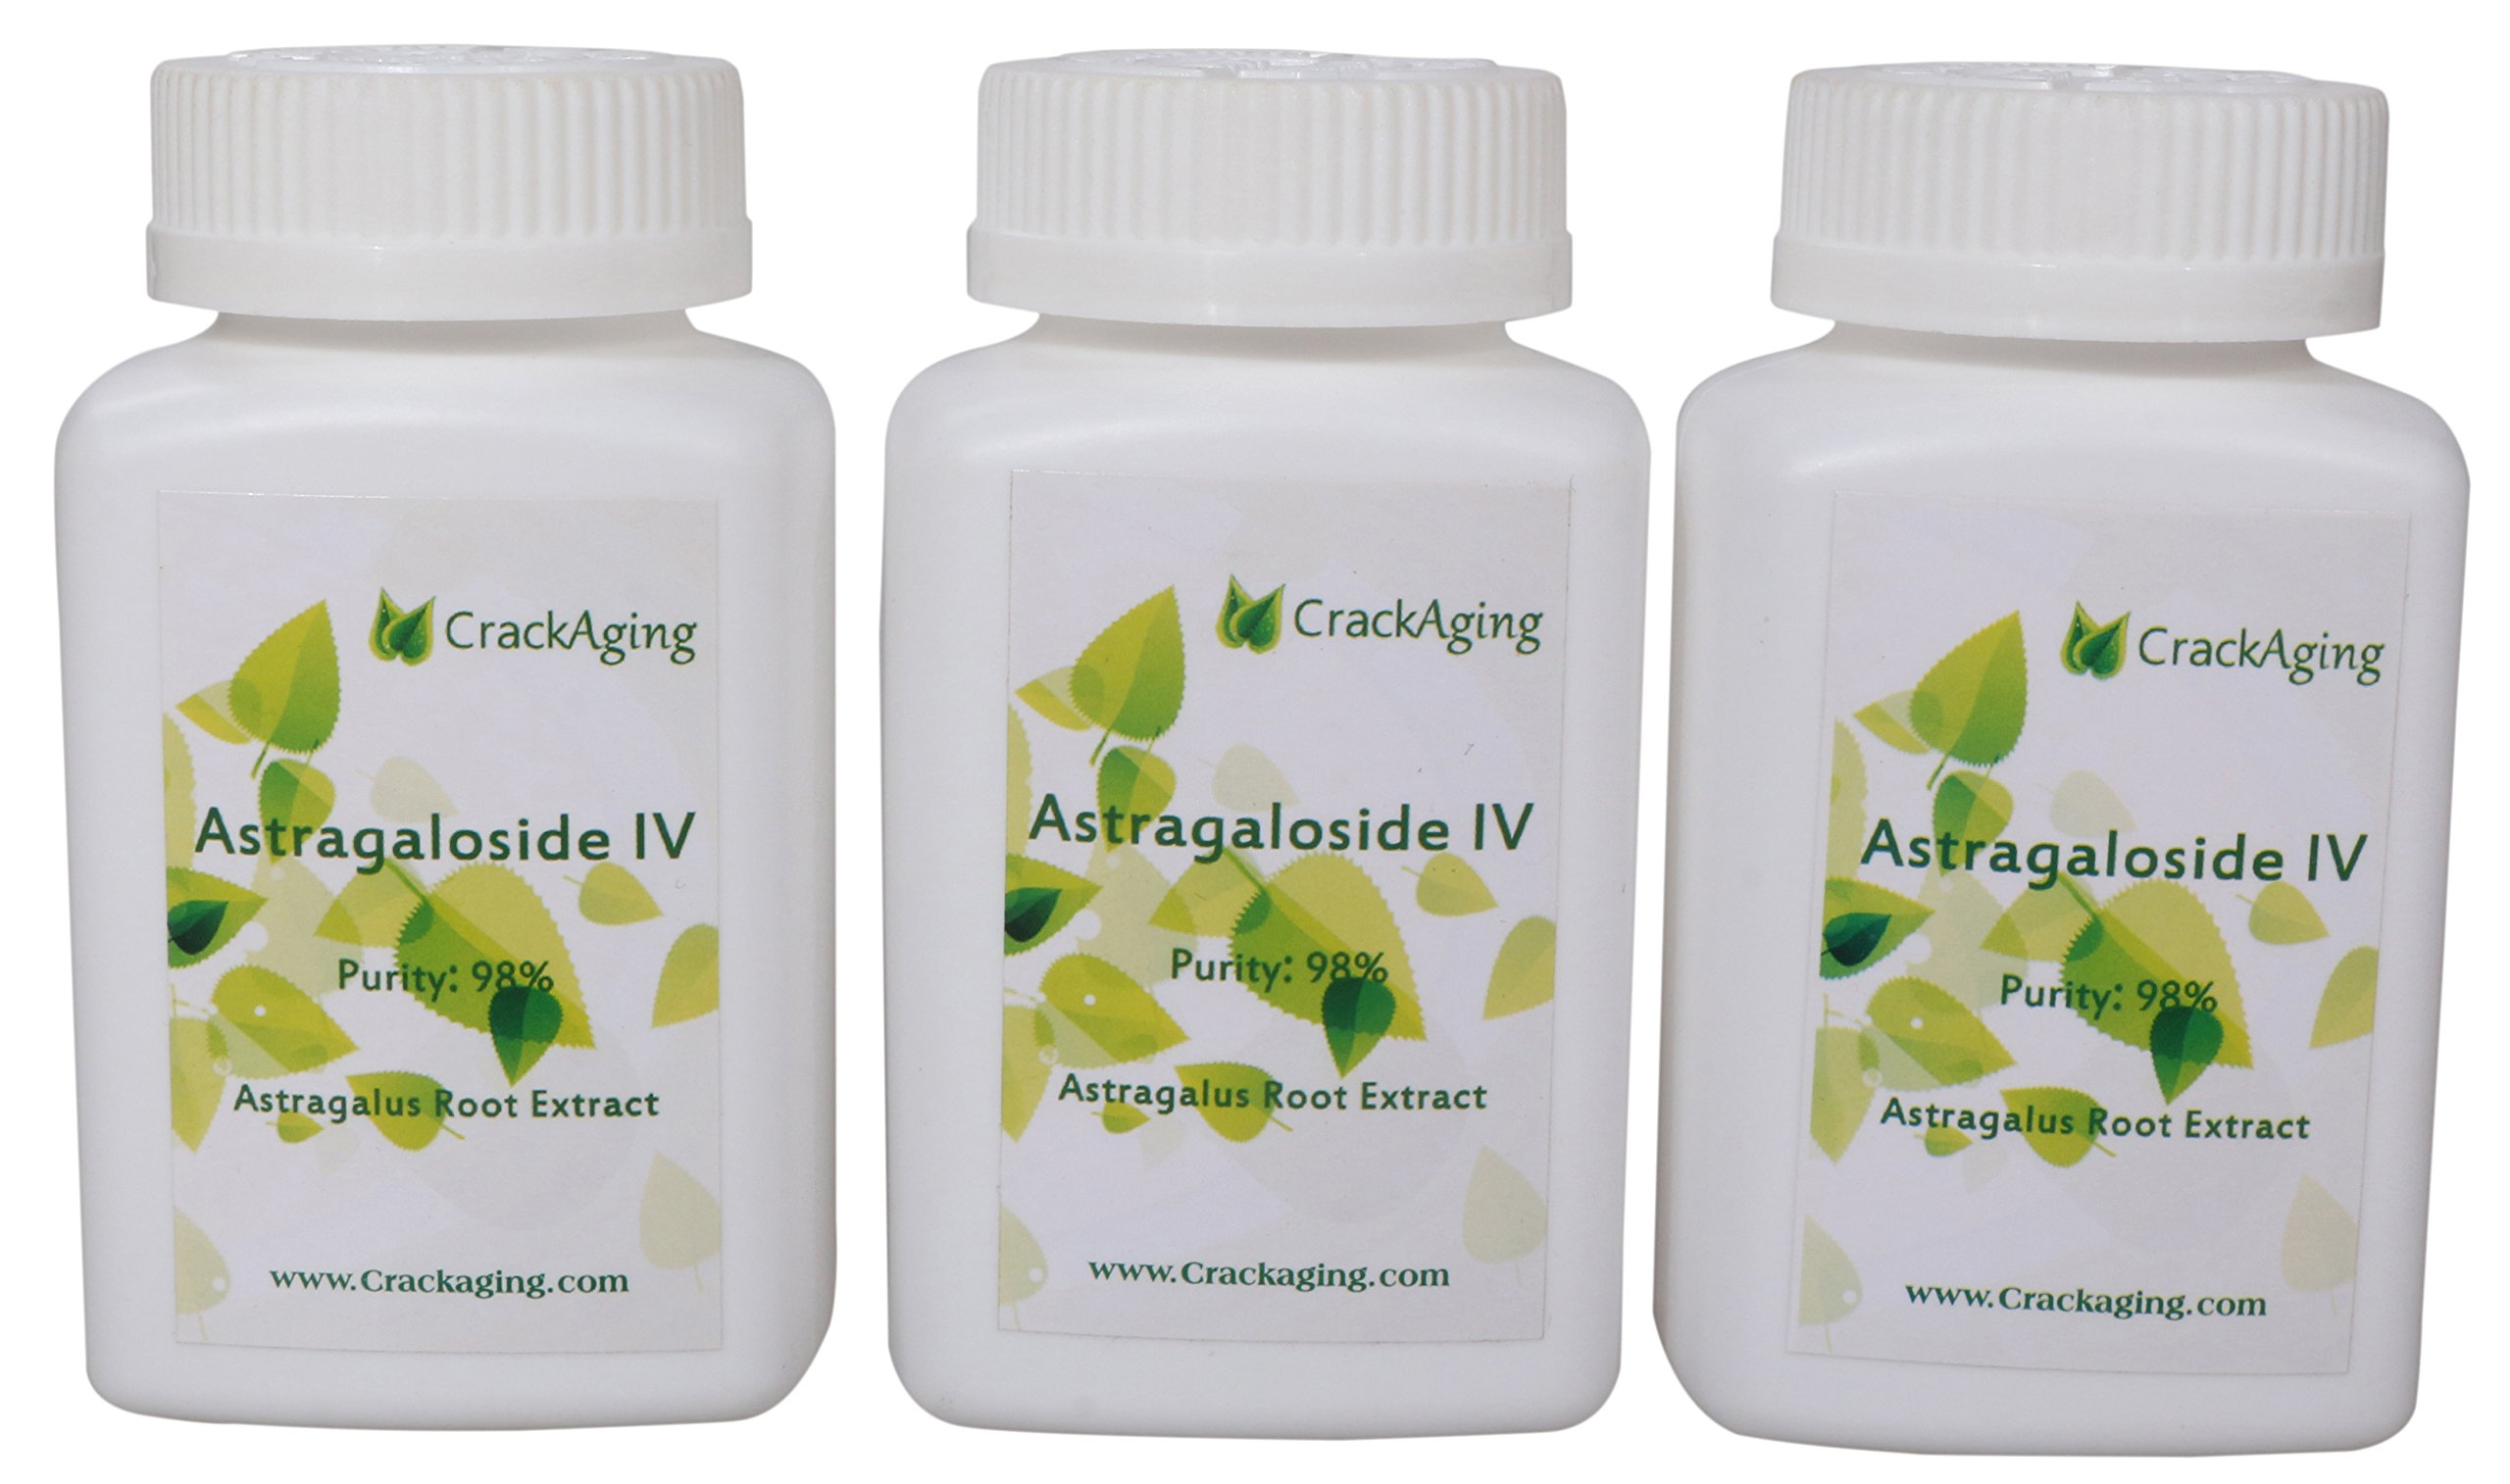 Super-Absorption Astragaloside IV 98% - Anti-Aging Supplement (Brand:crackaging) (50mg/Cap 90 Caps in 3 Bottles)